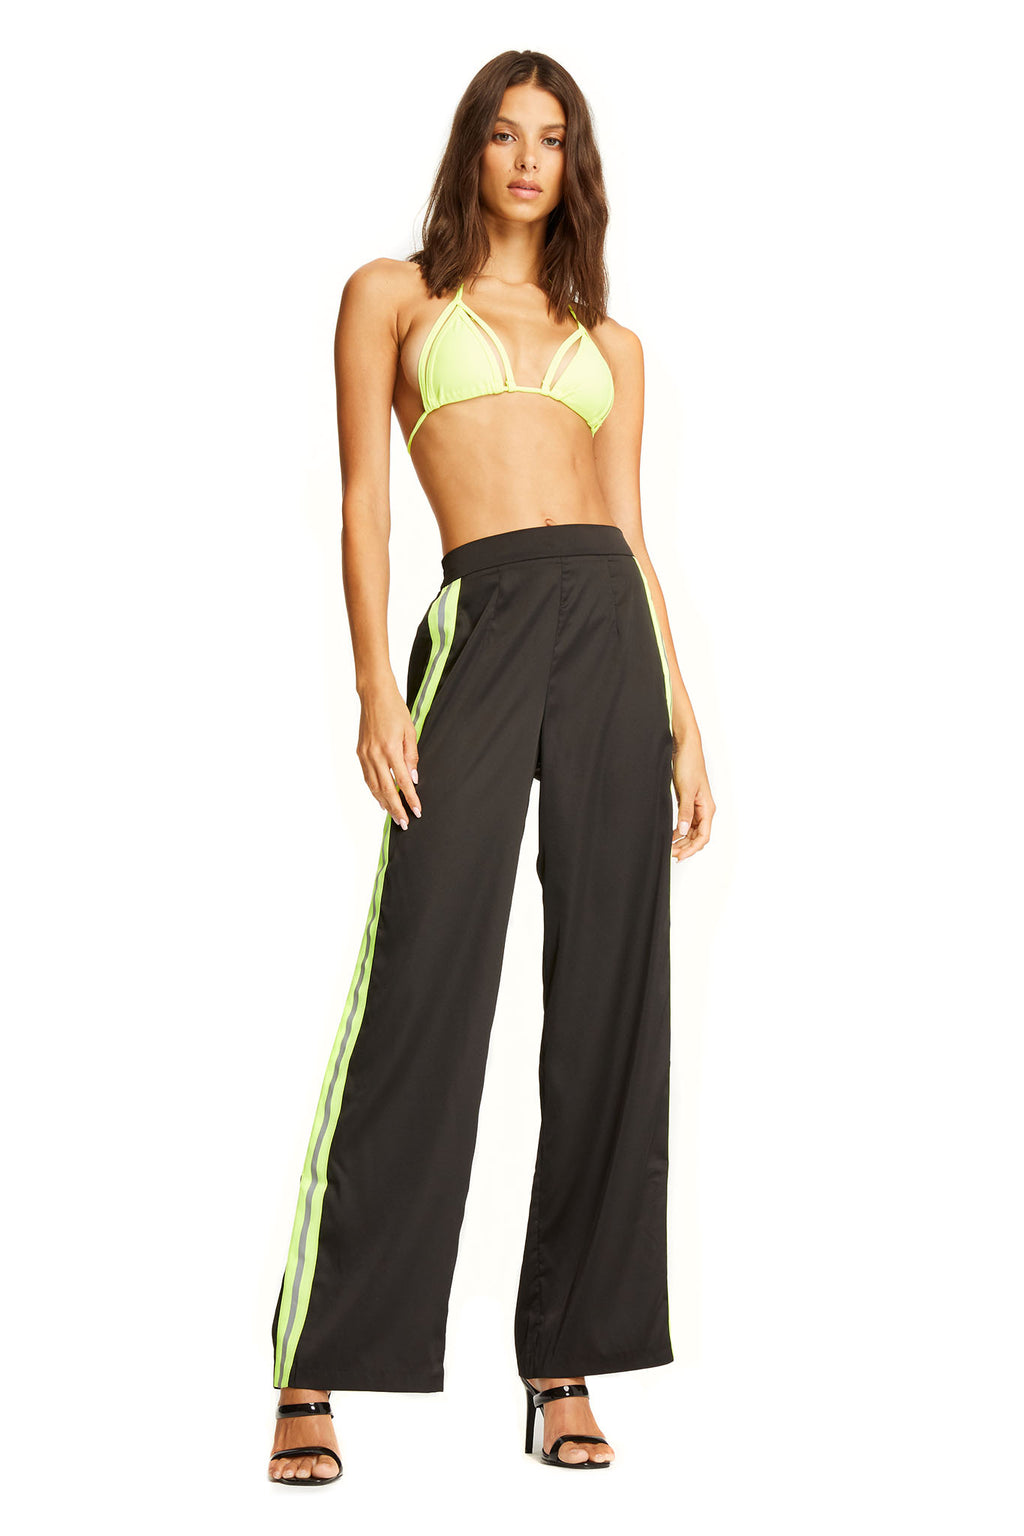 MAXWELL PANT - NEON/BLACK